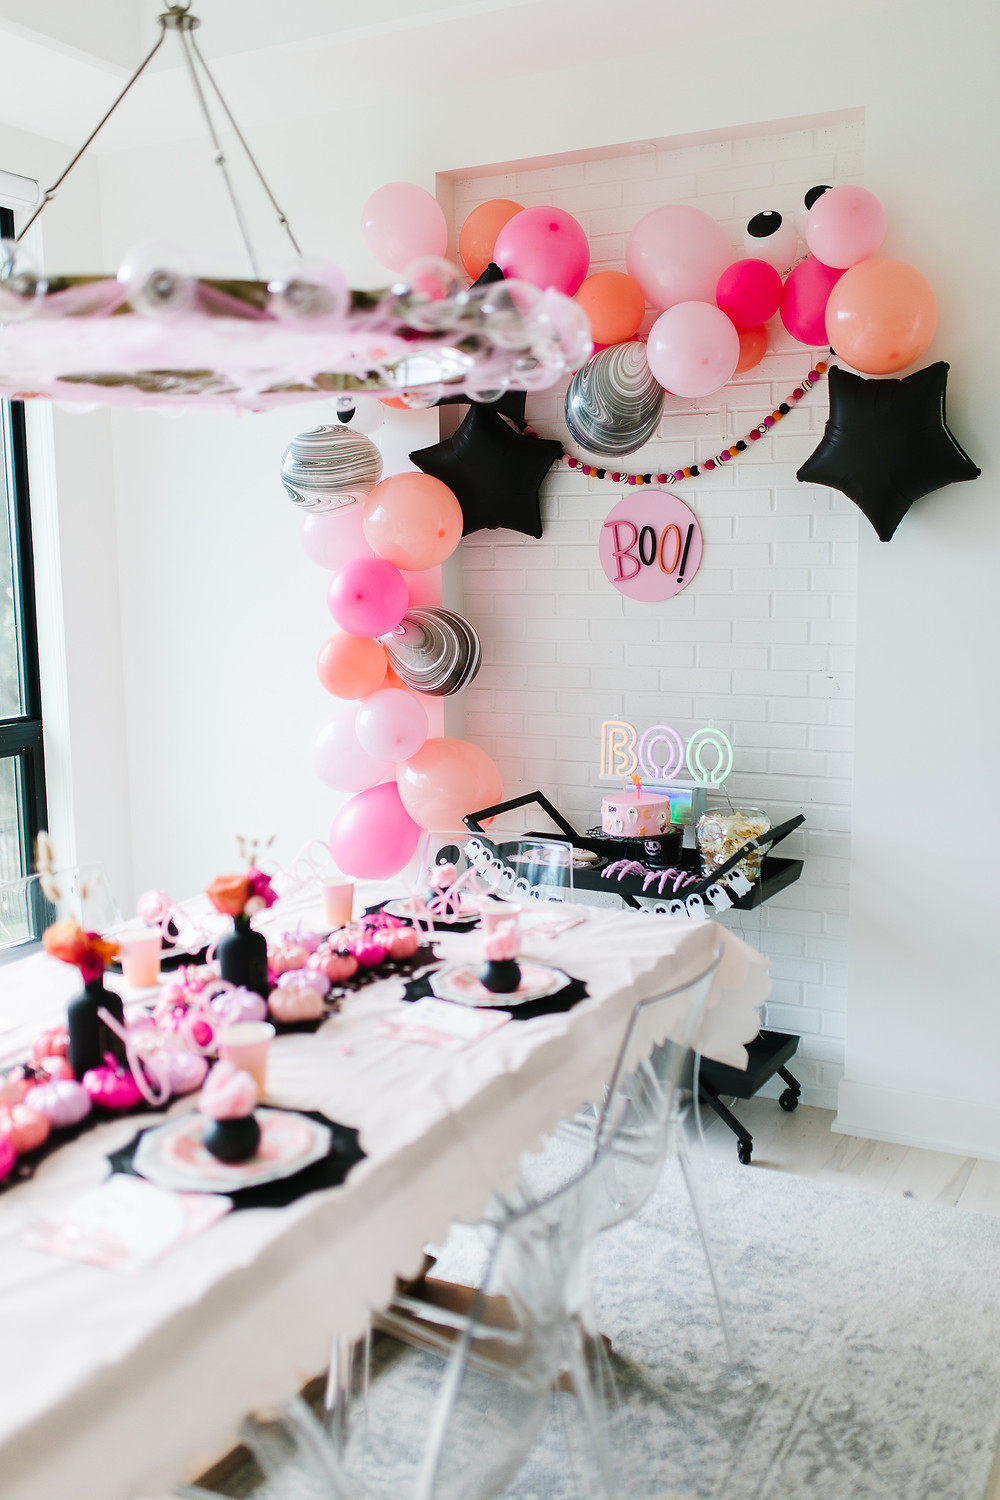 A ghoul gang halloween party with ombre pink and orange decorations, balloons, spider webs and glitter.